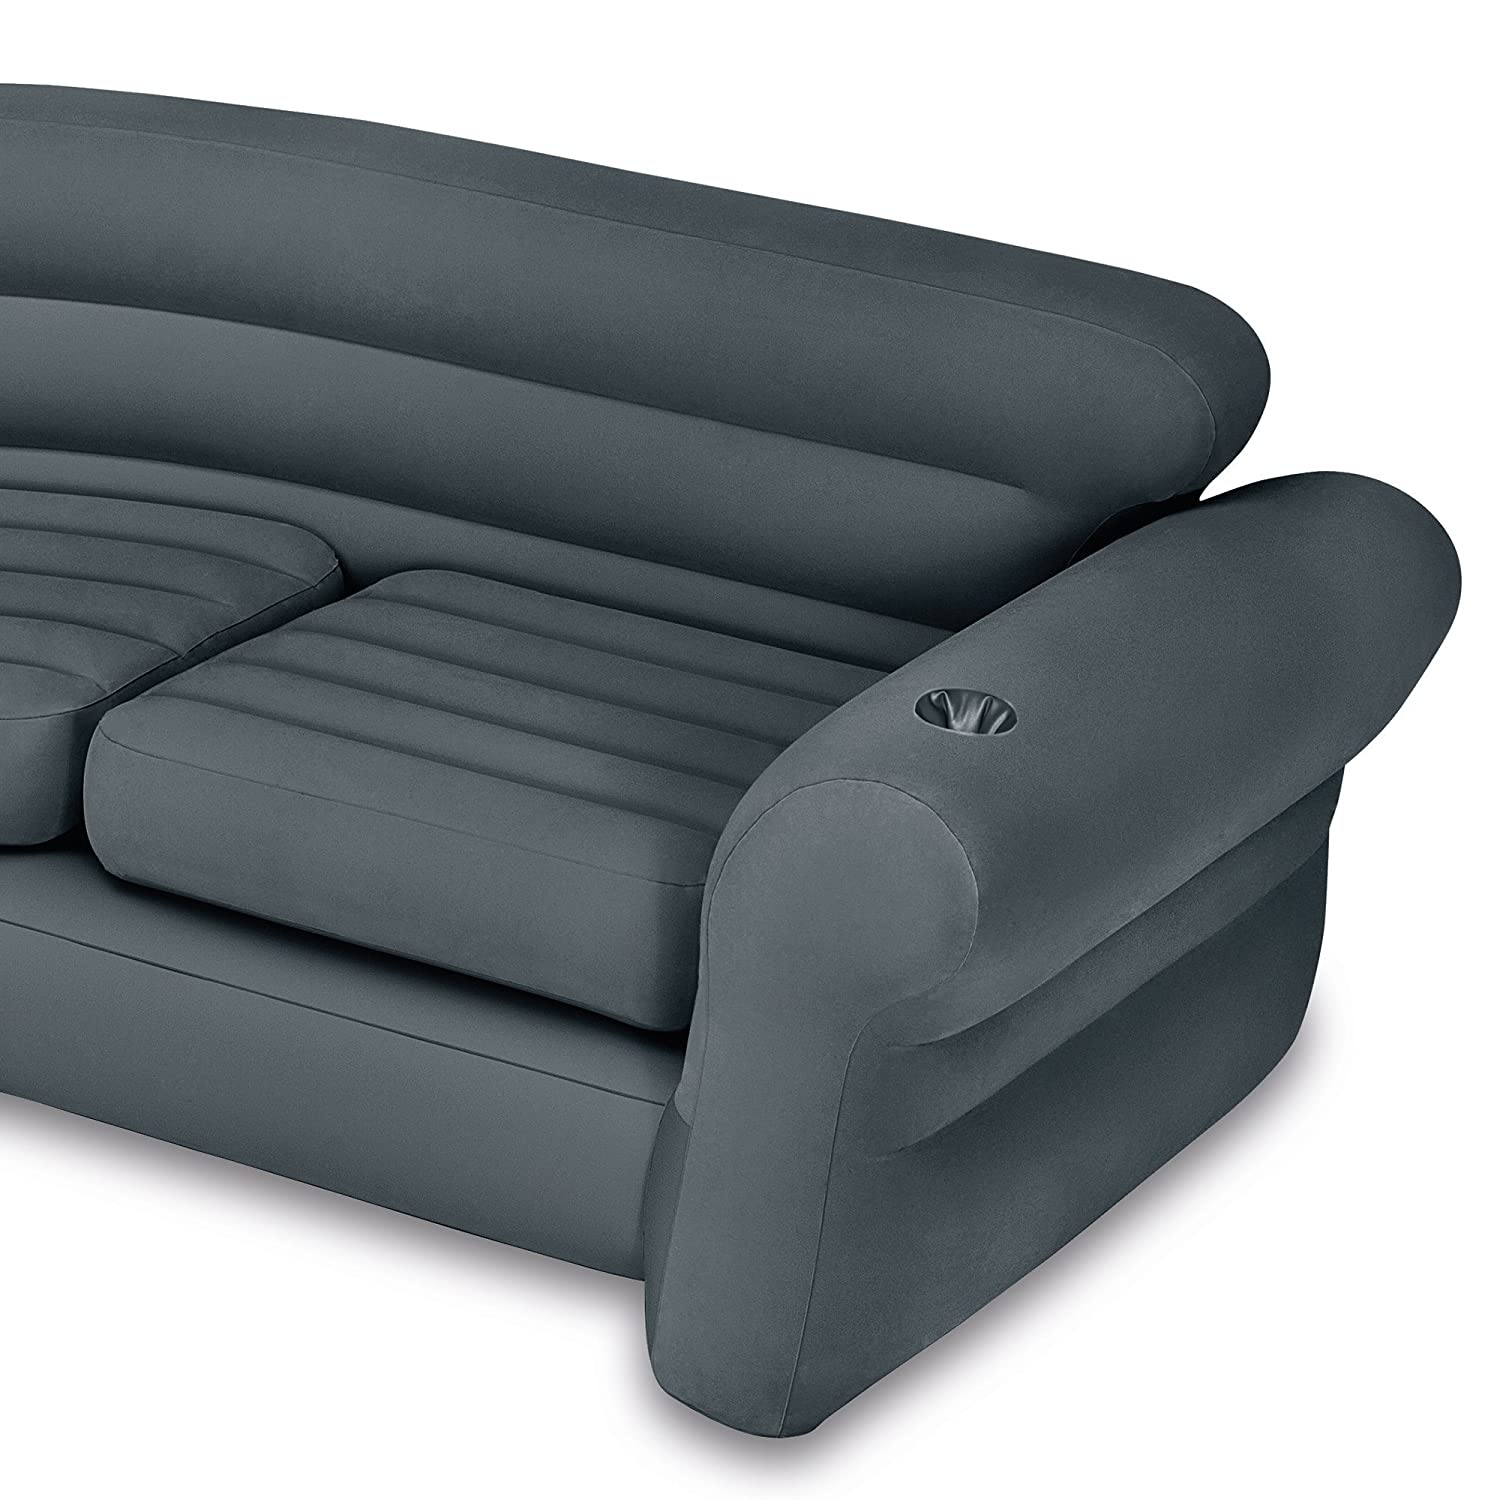 How To Keep Patio Furniture From Blowing Away.Intex Inflatable Corner Sofa 101 X 80 X 30